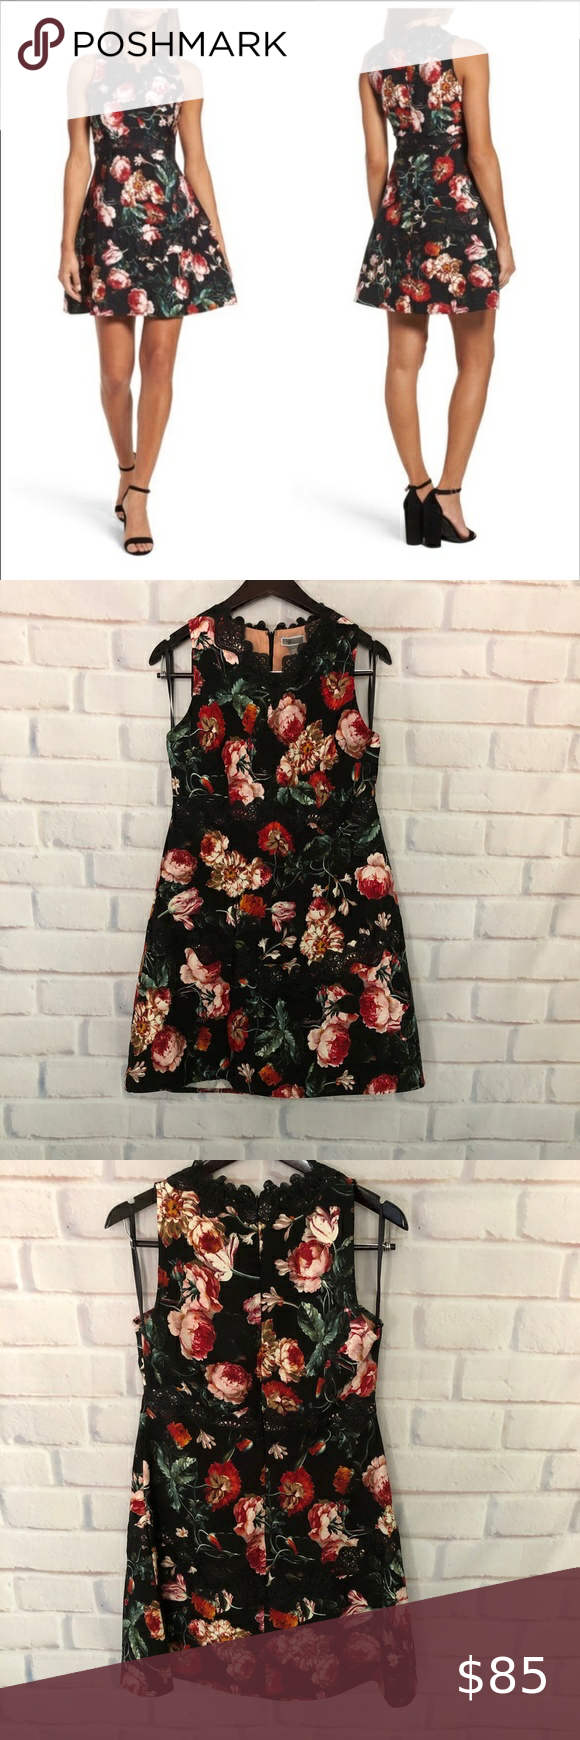 Chelsea28 Foxie Black Floral Dress Nwt Size S Floral Dress Black Dresses Floral Dress [ 1740 x 580 Pixel ]